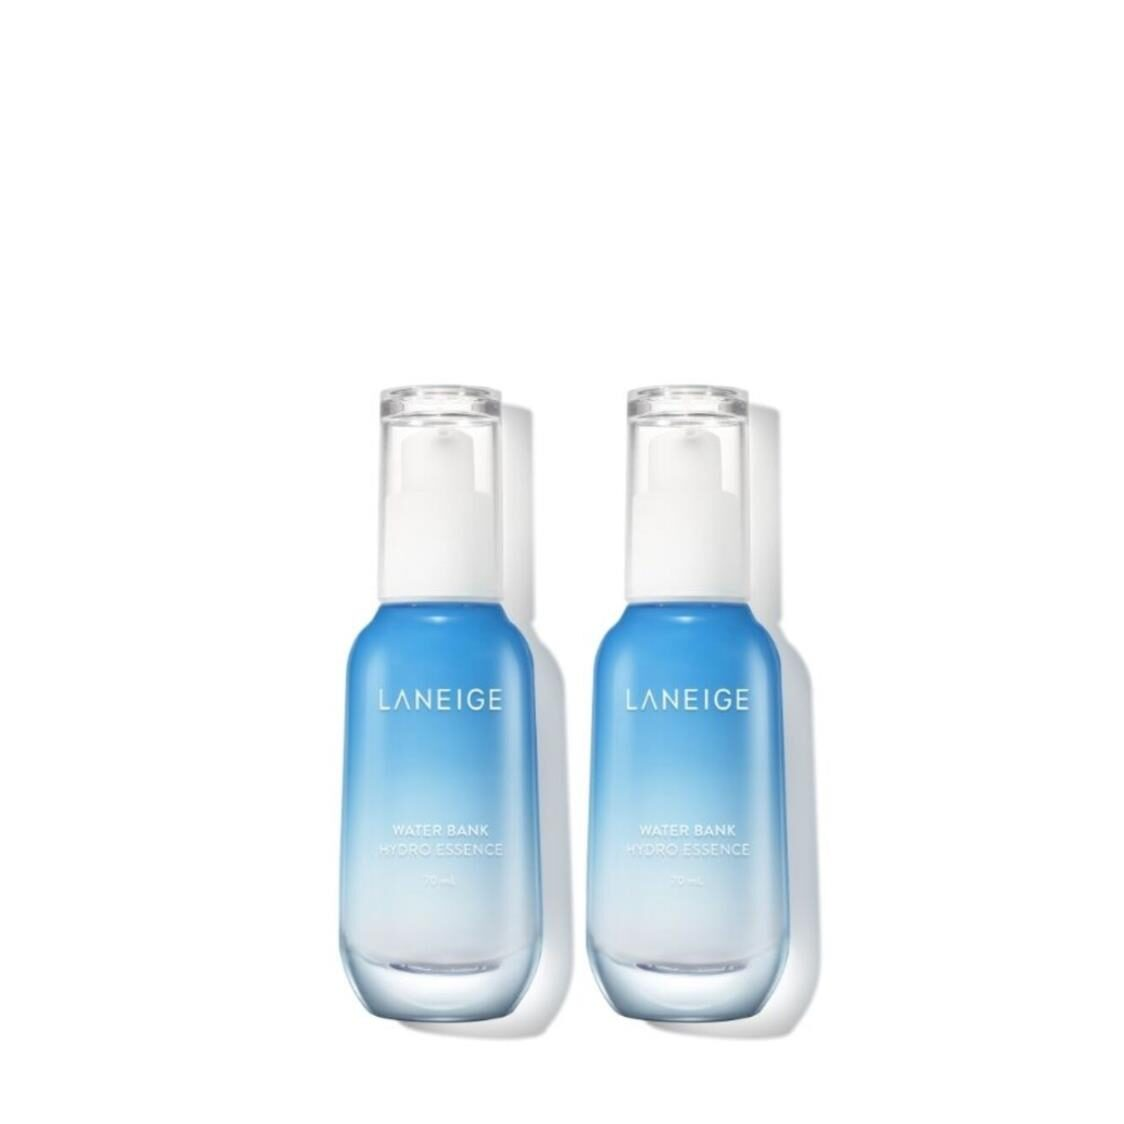 LANEIGE Water Bank Hydro Essence Duo Set UP 120